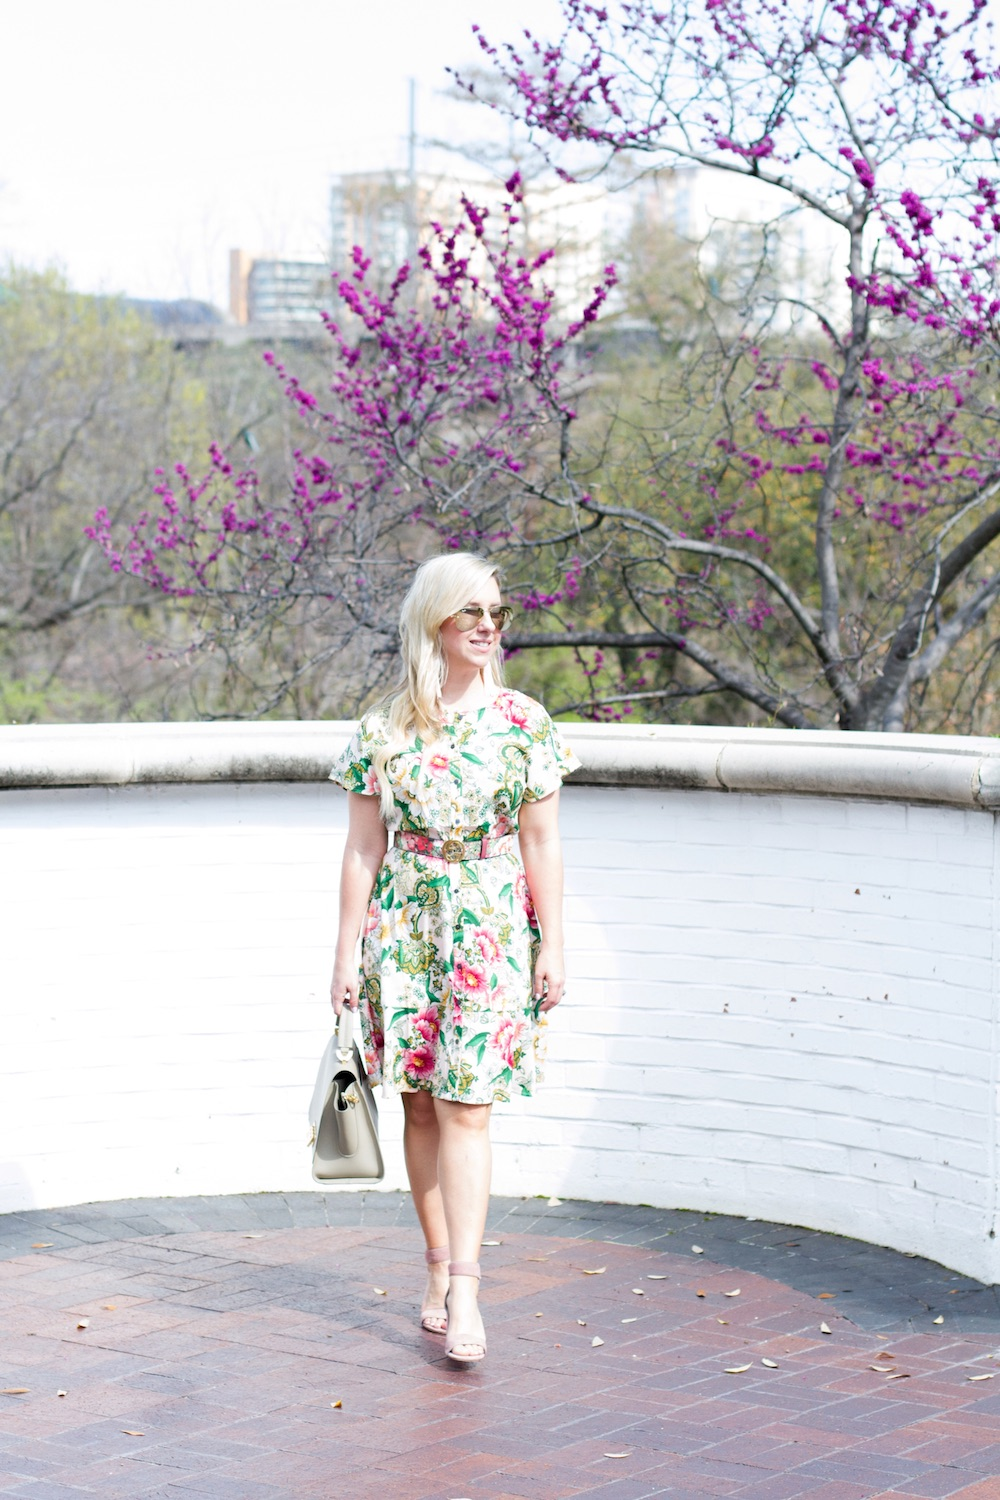 7 Floral Dress For Spring | The Darling Petite Diva